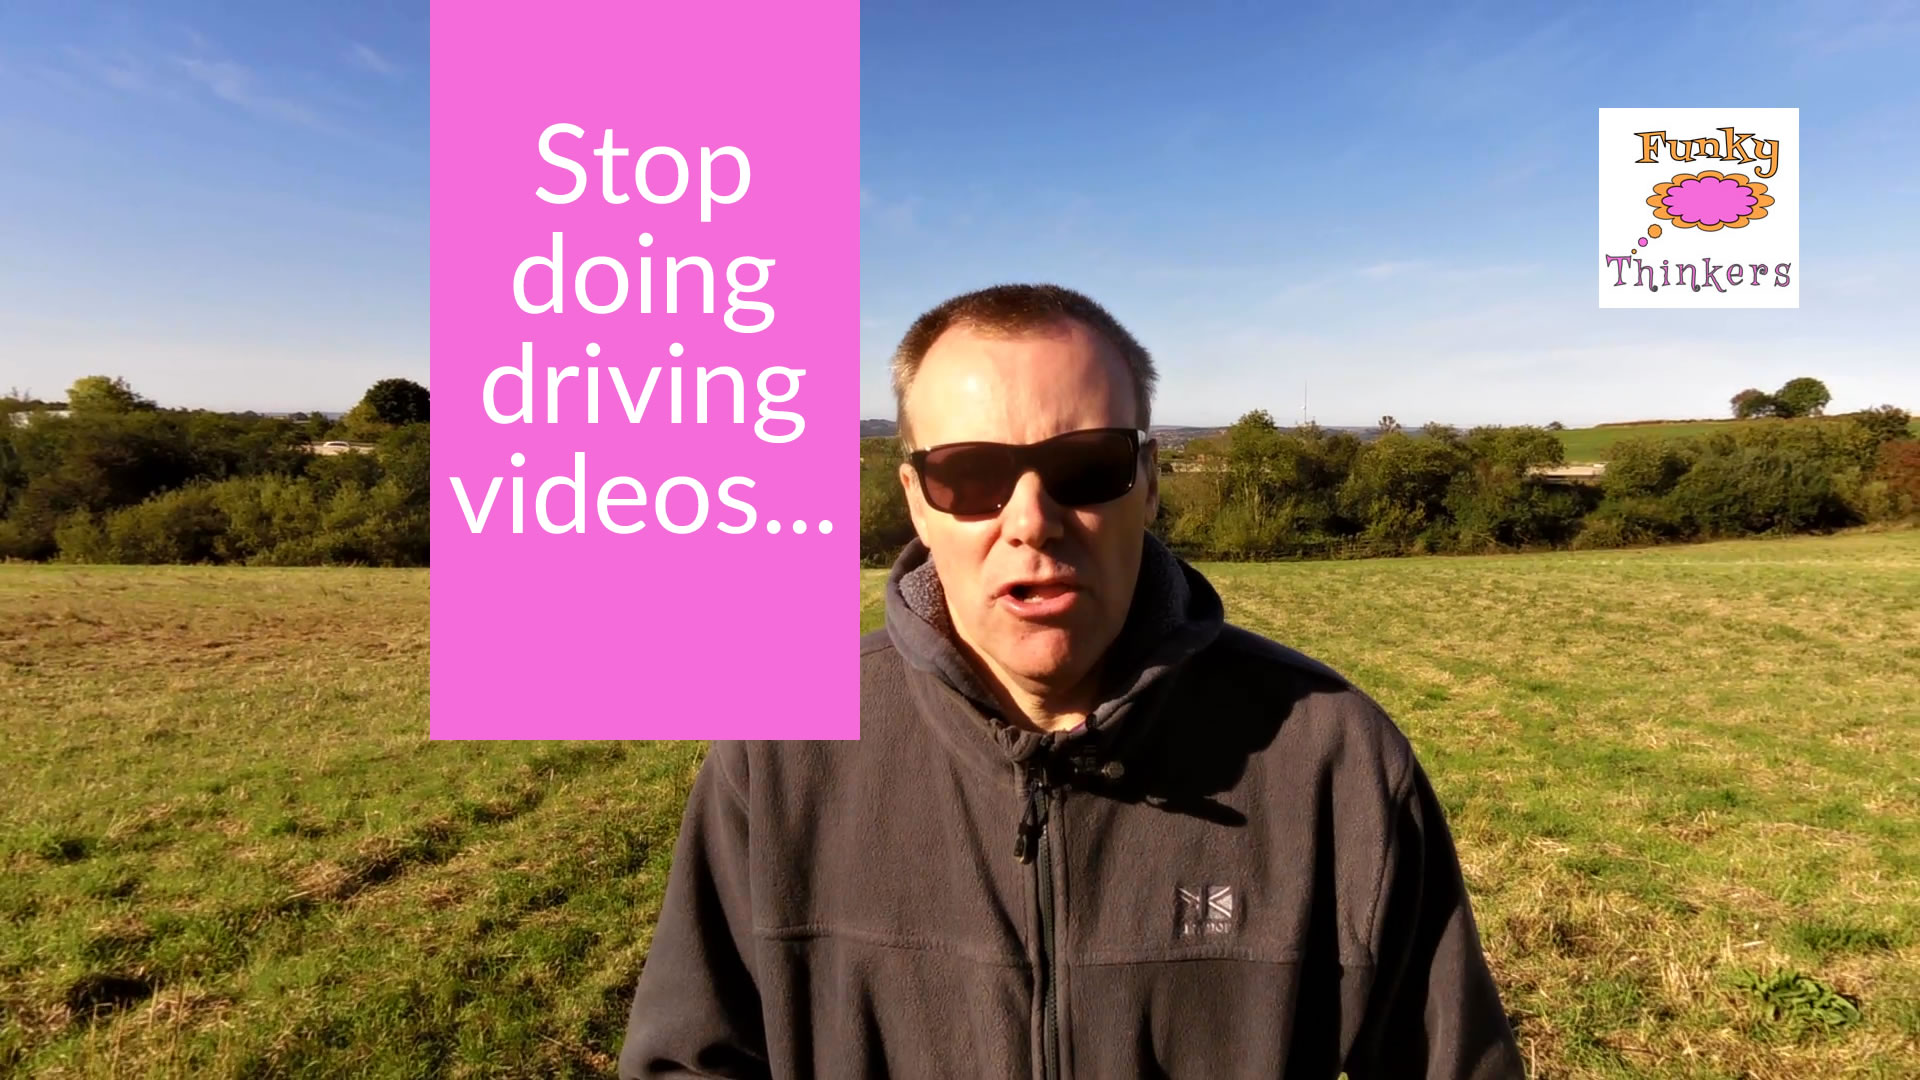 Stop doing driving videos